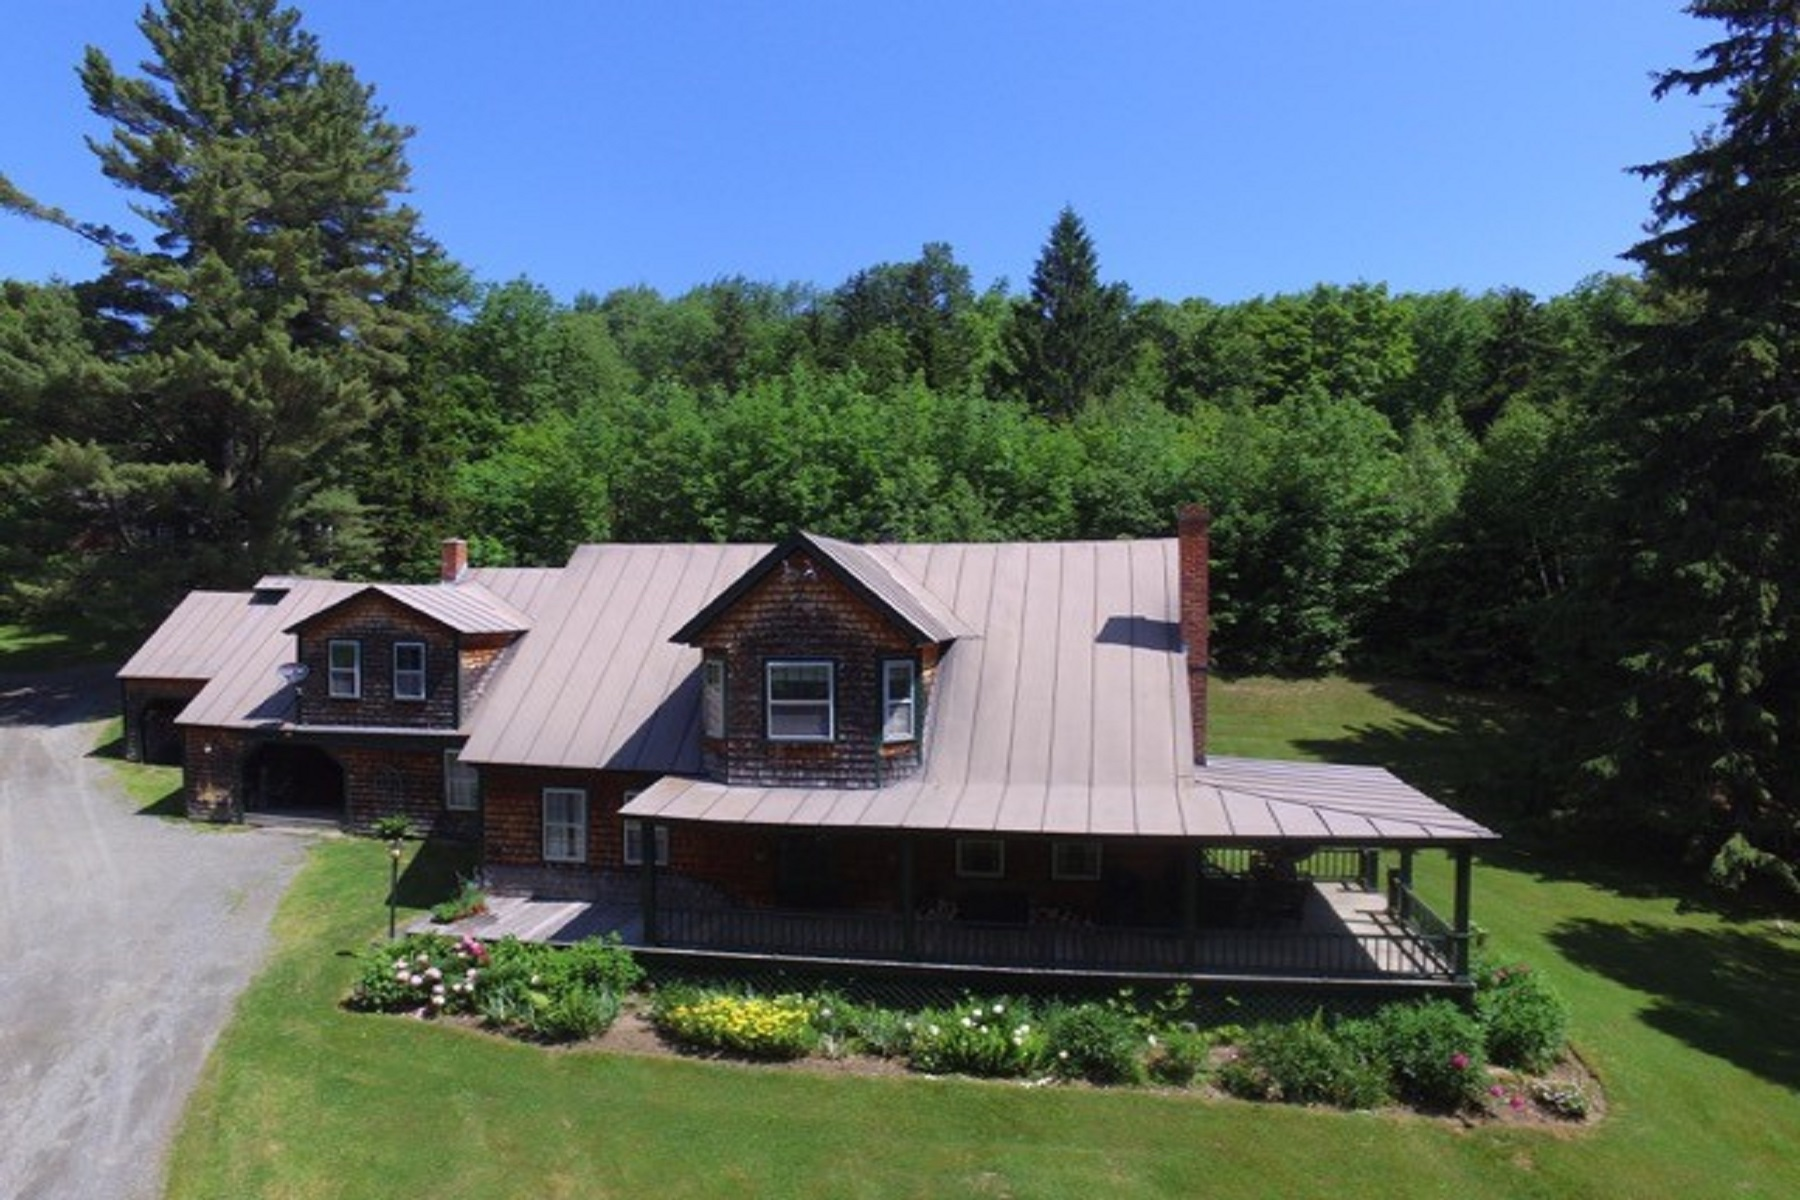 Single Family Home for Sale at Craven Farm 1700 Lakota Road Barnard, Vermont 05031 United States